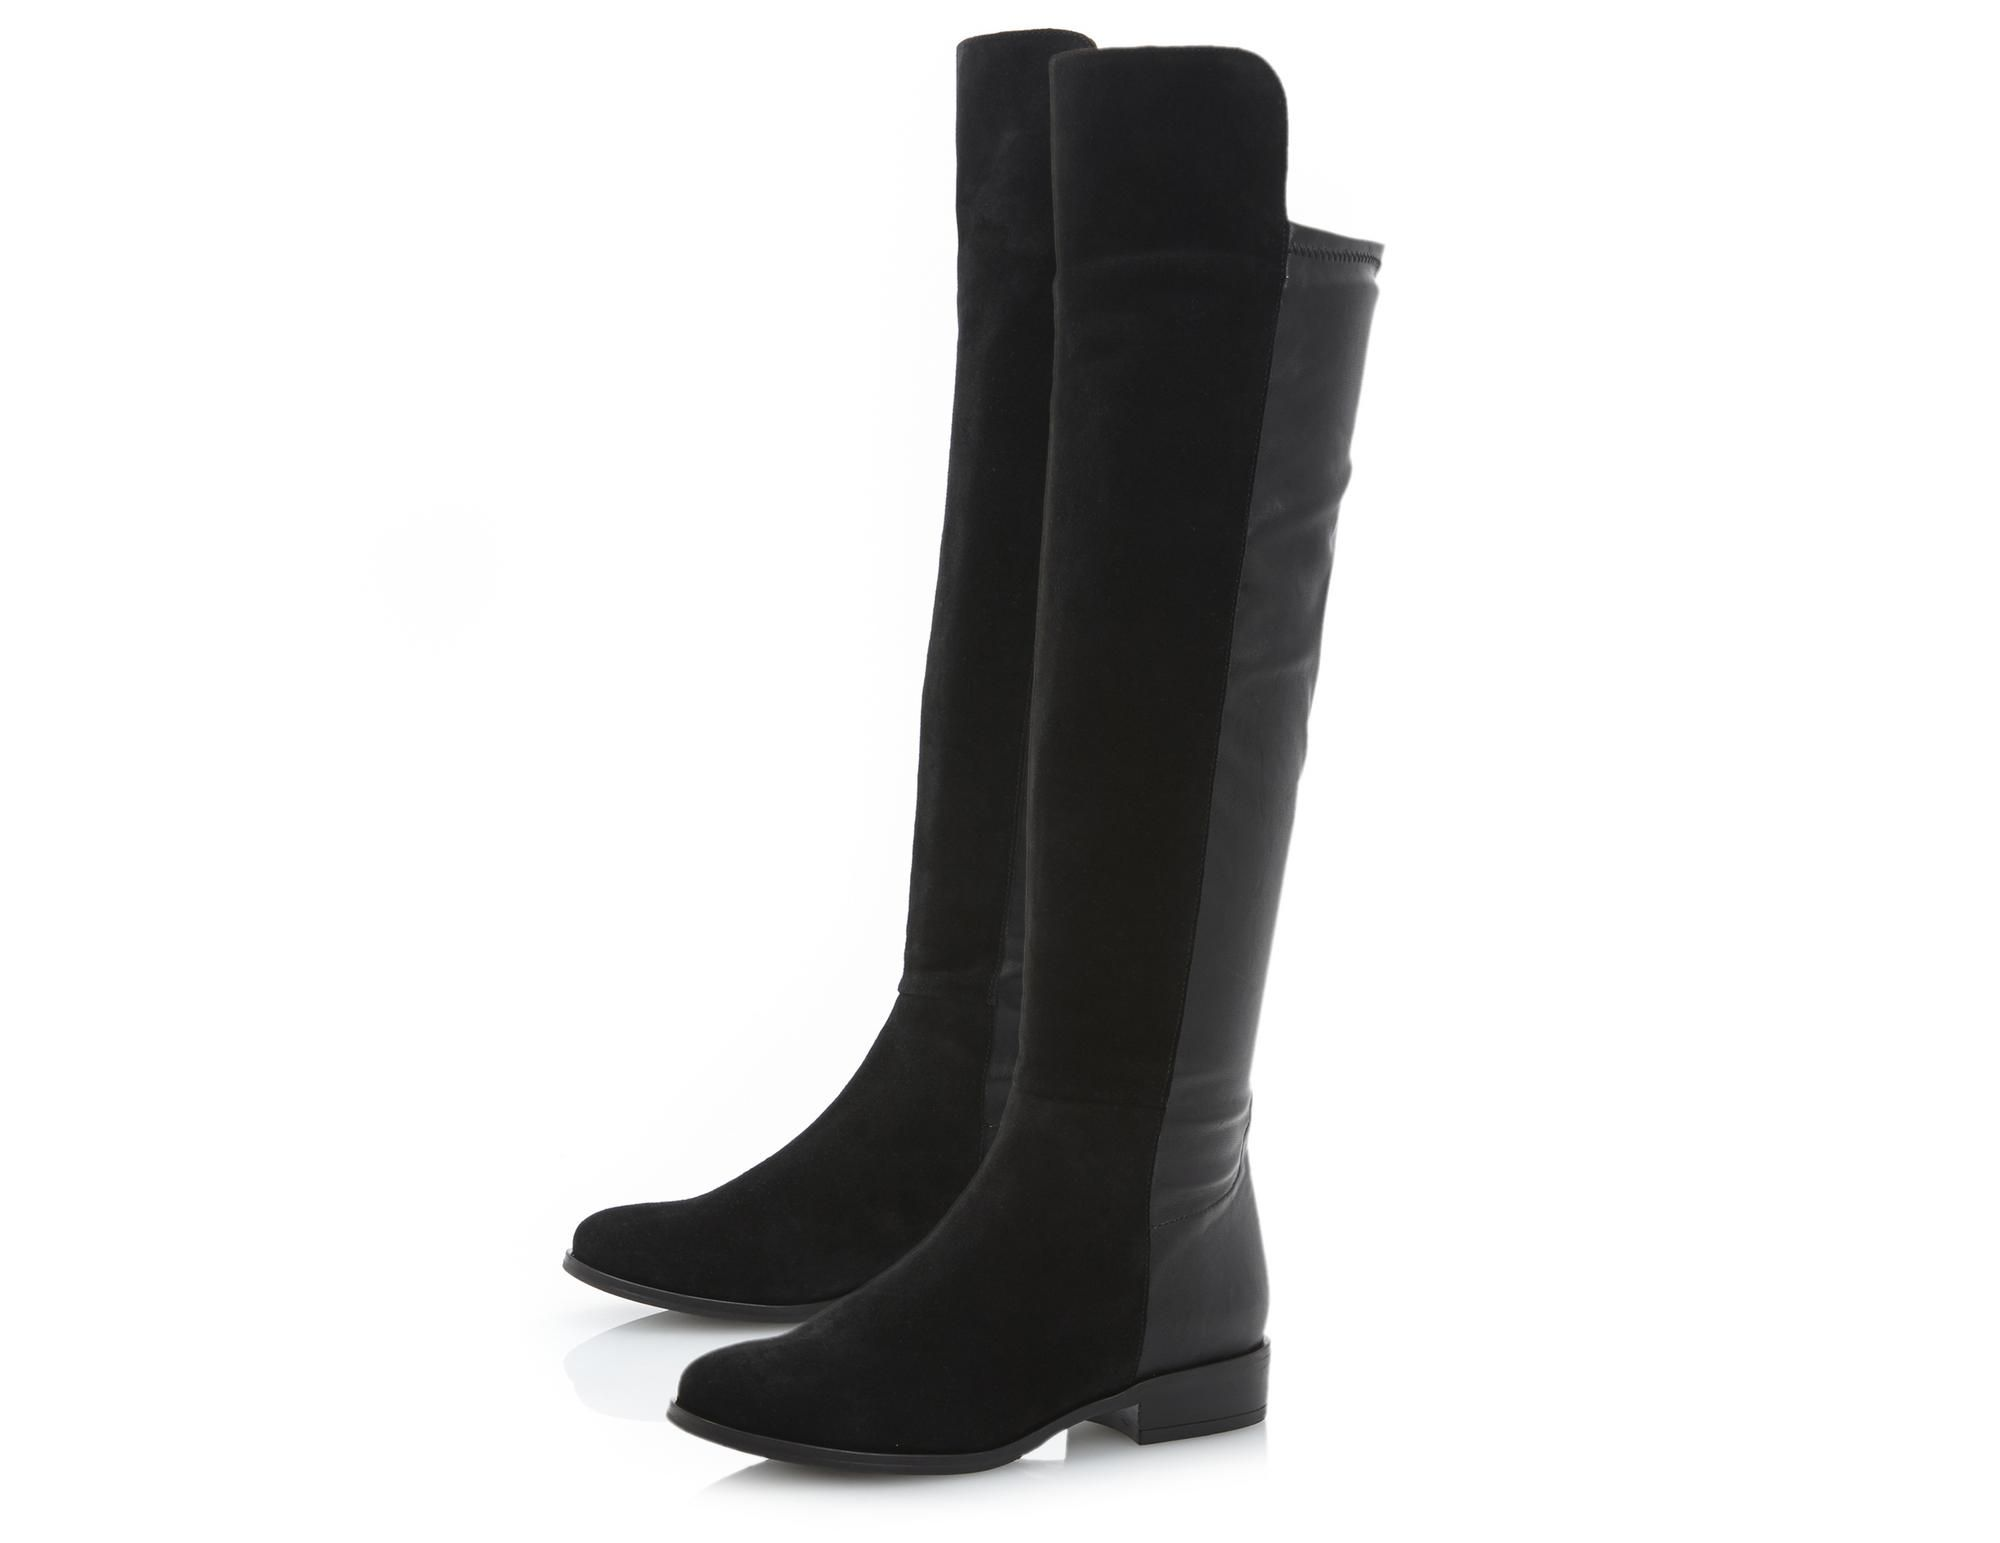 Dune Trish Black Suede Pull On Over The Knee Boot   Dune Shoes Online